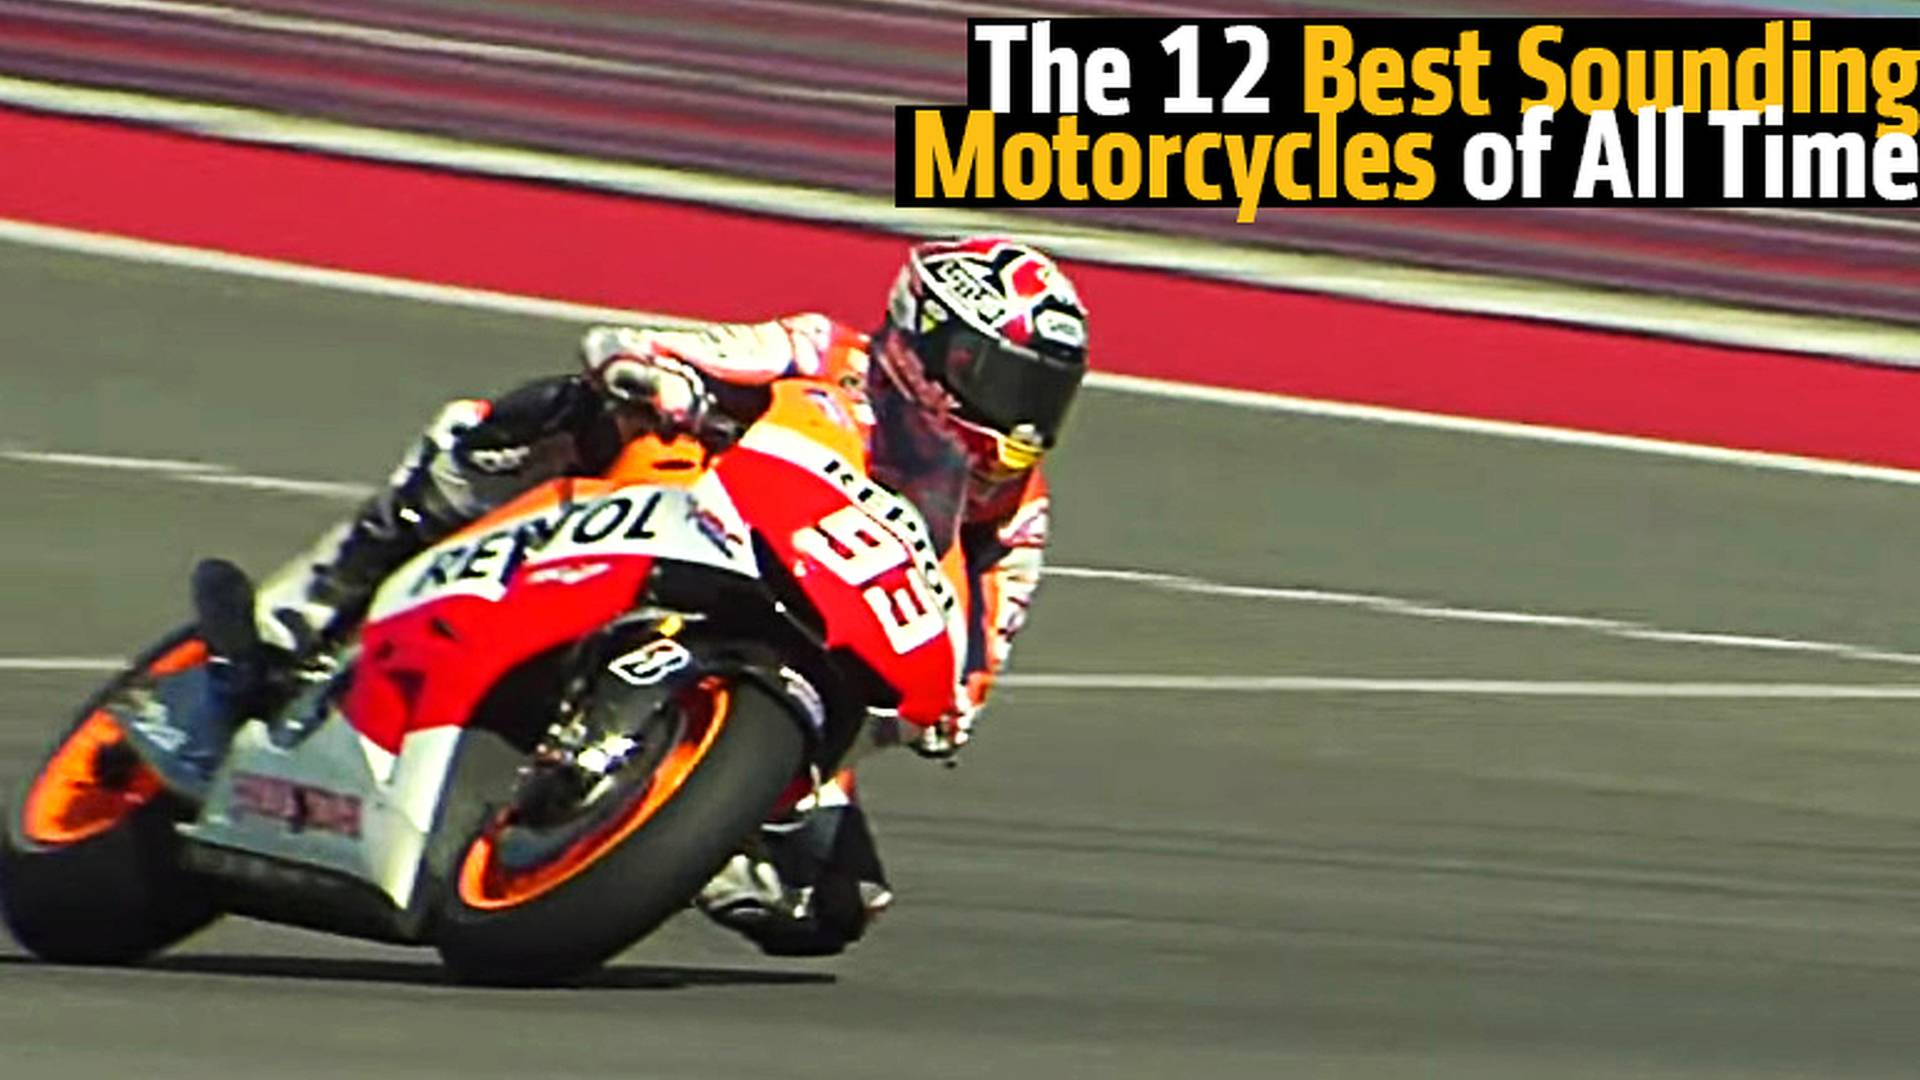 12 Best Sounding Motorcycles of All Time